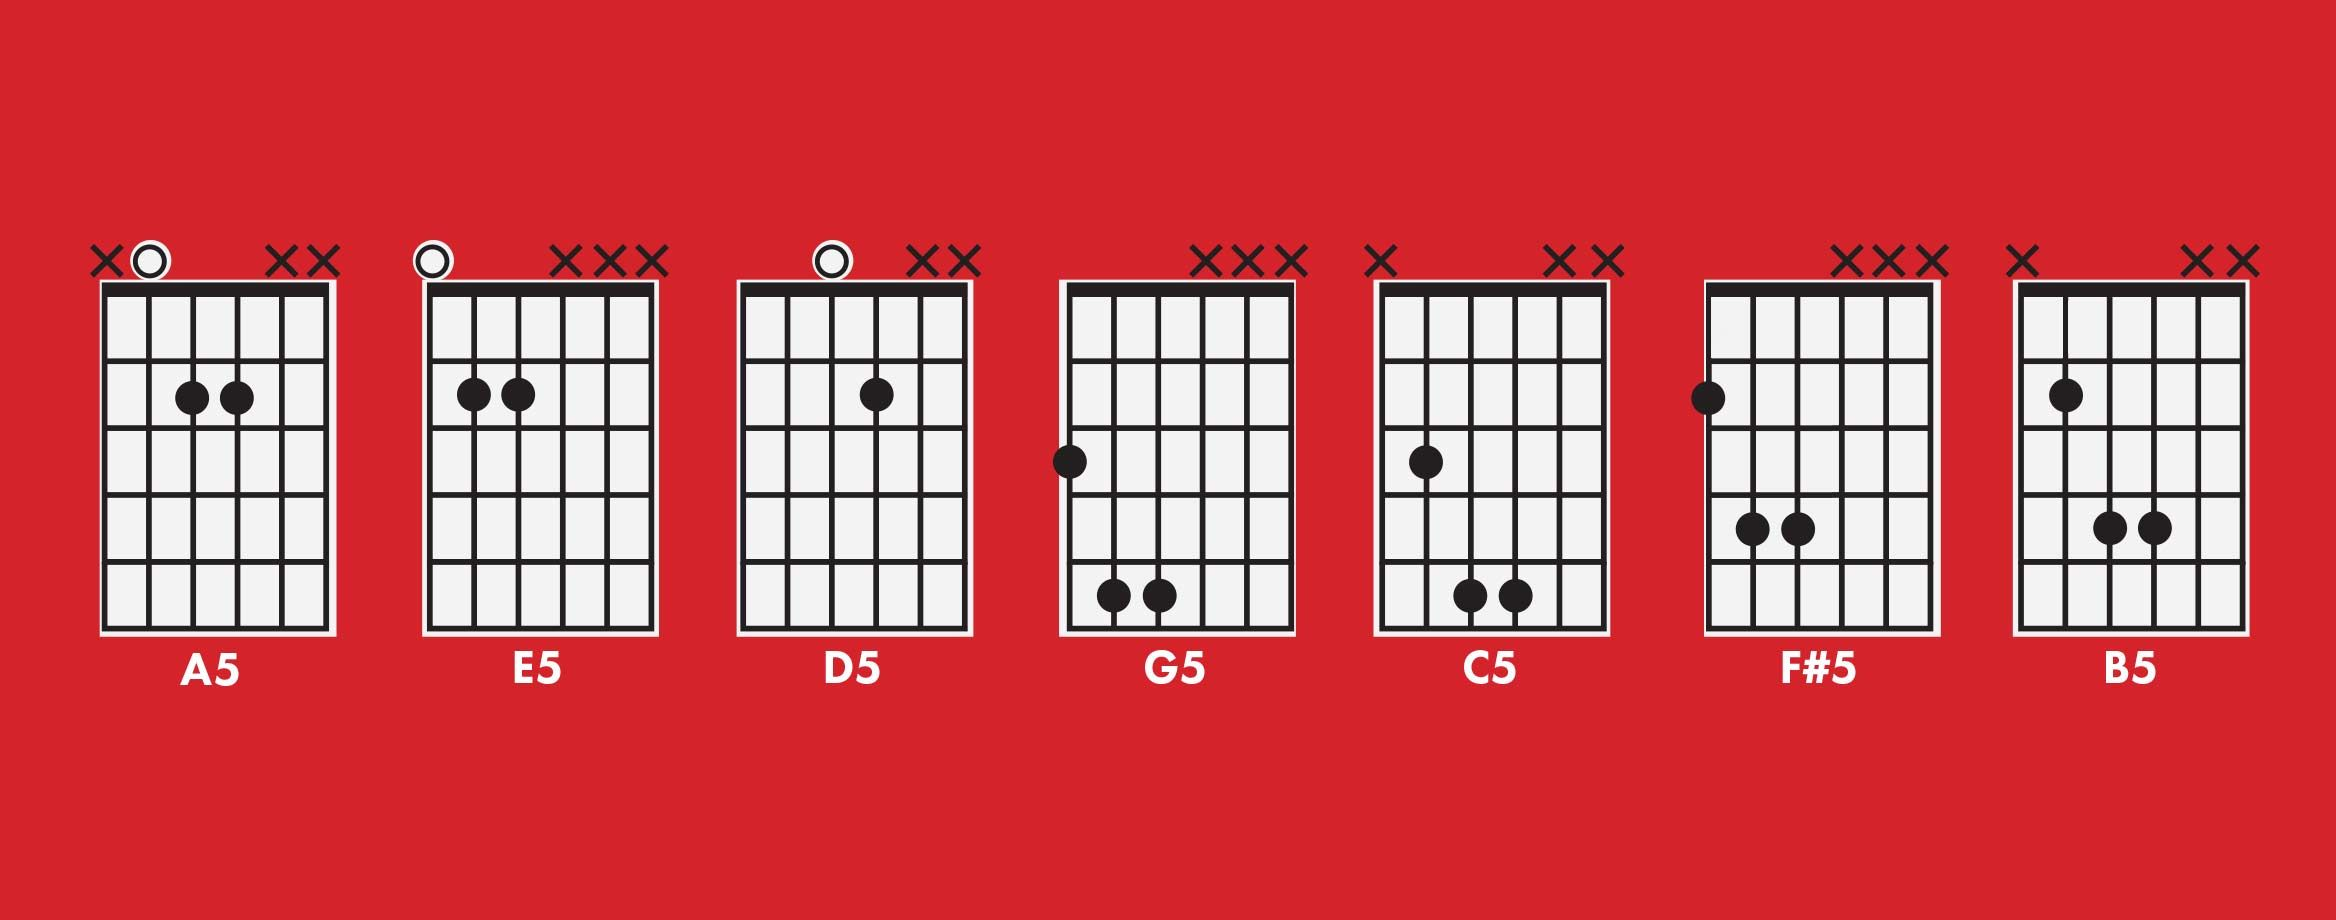 What Is A Power Chord Guitars Pinterest Power Chord And Guitars